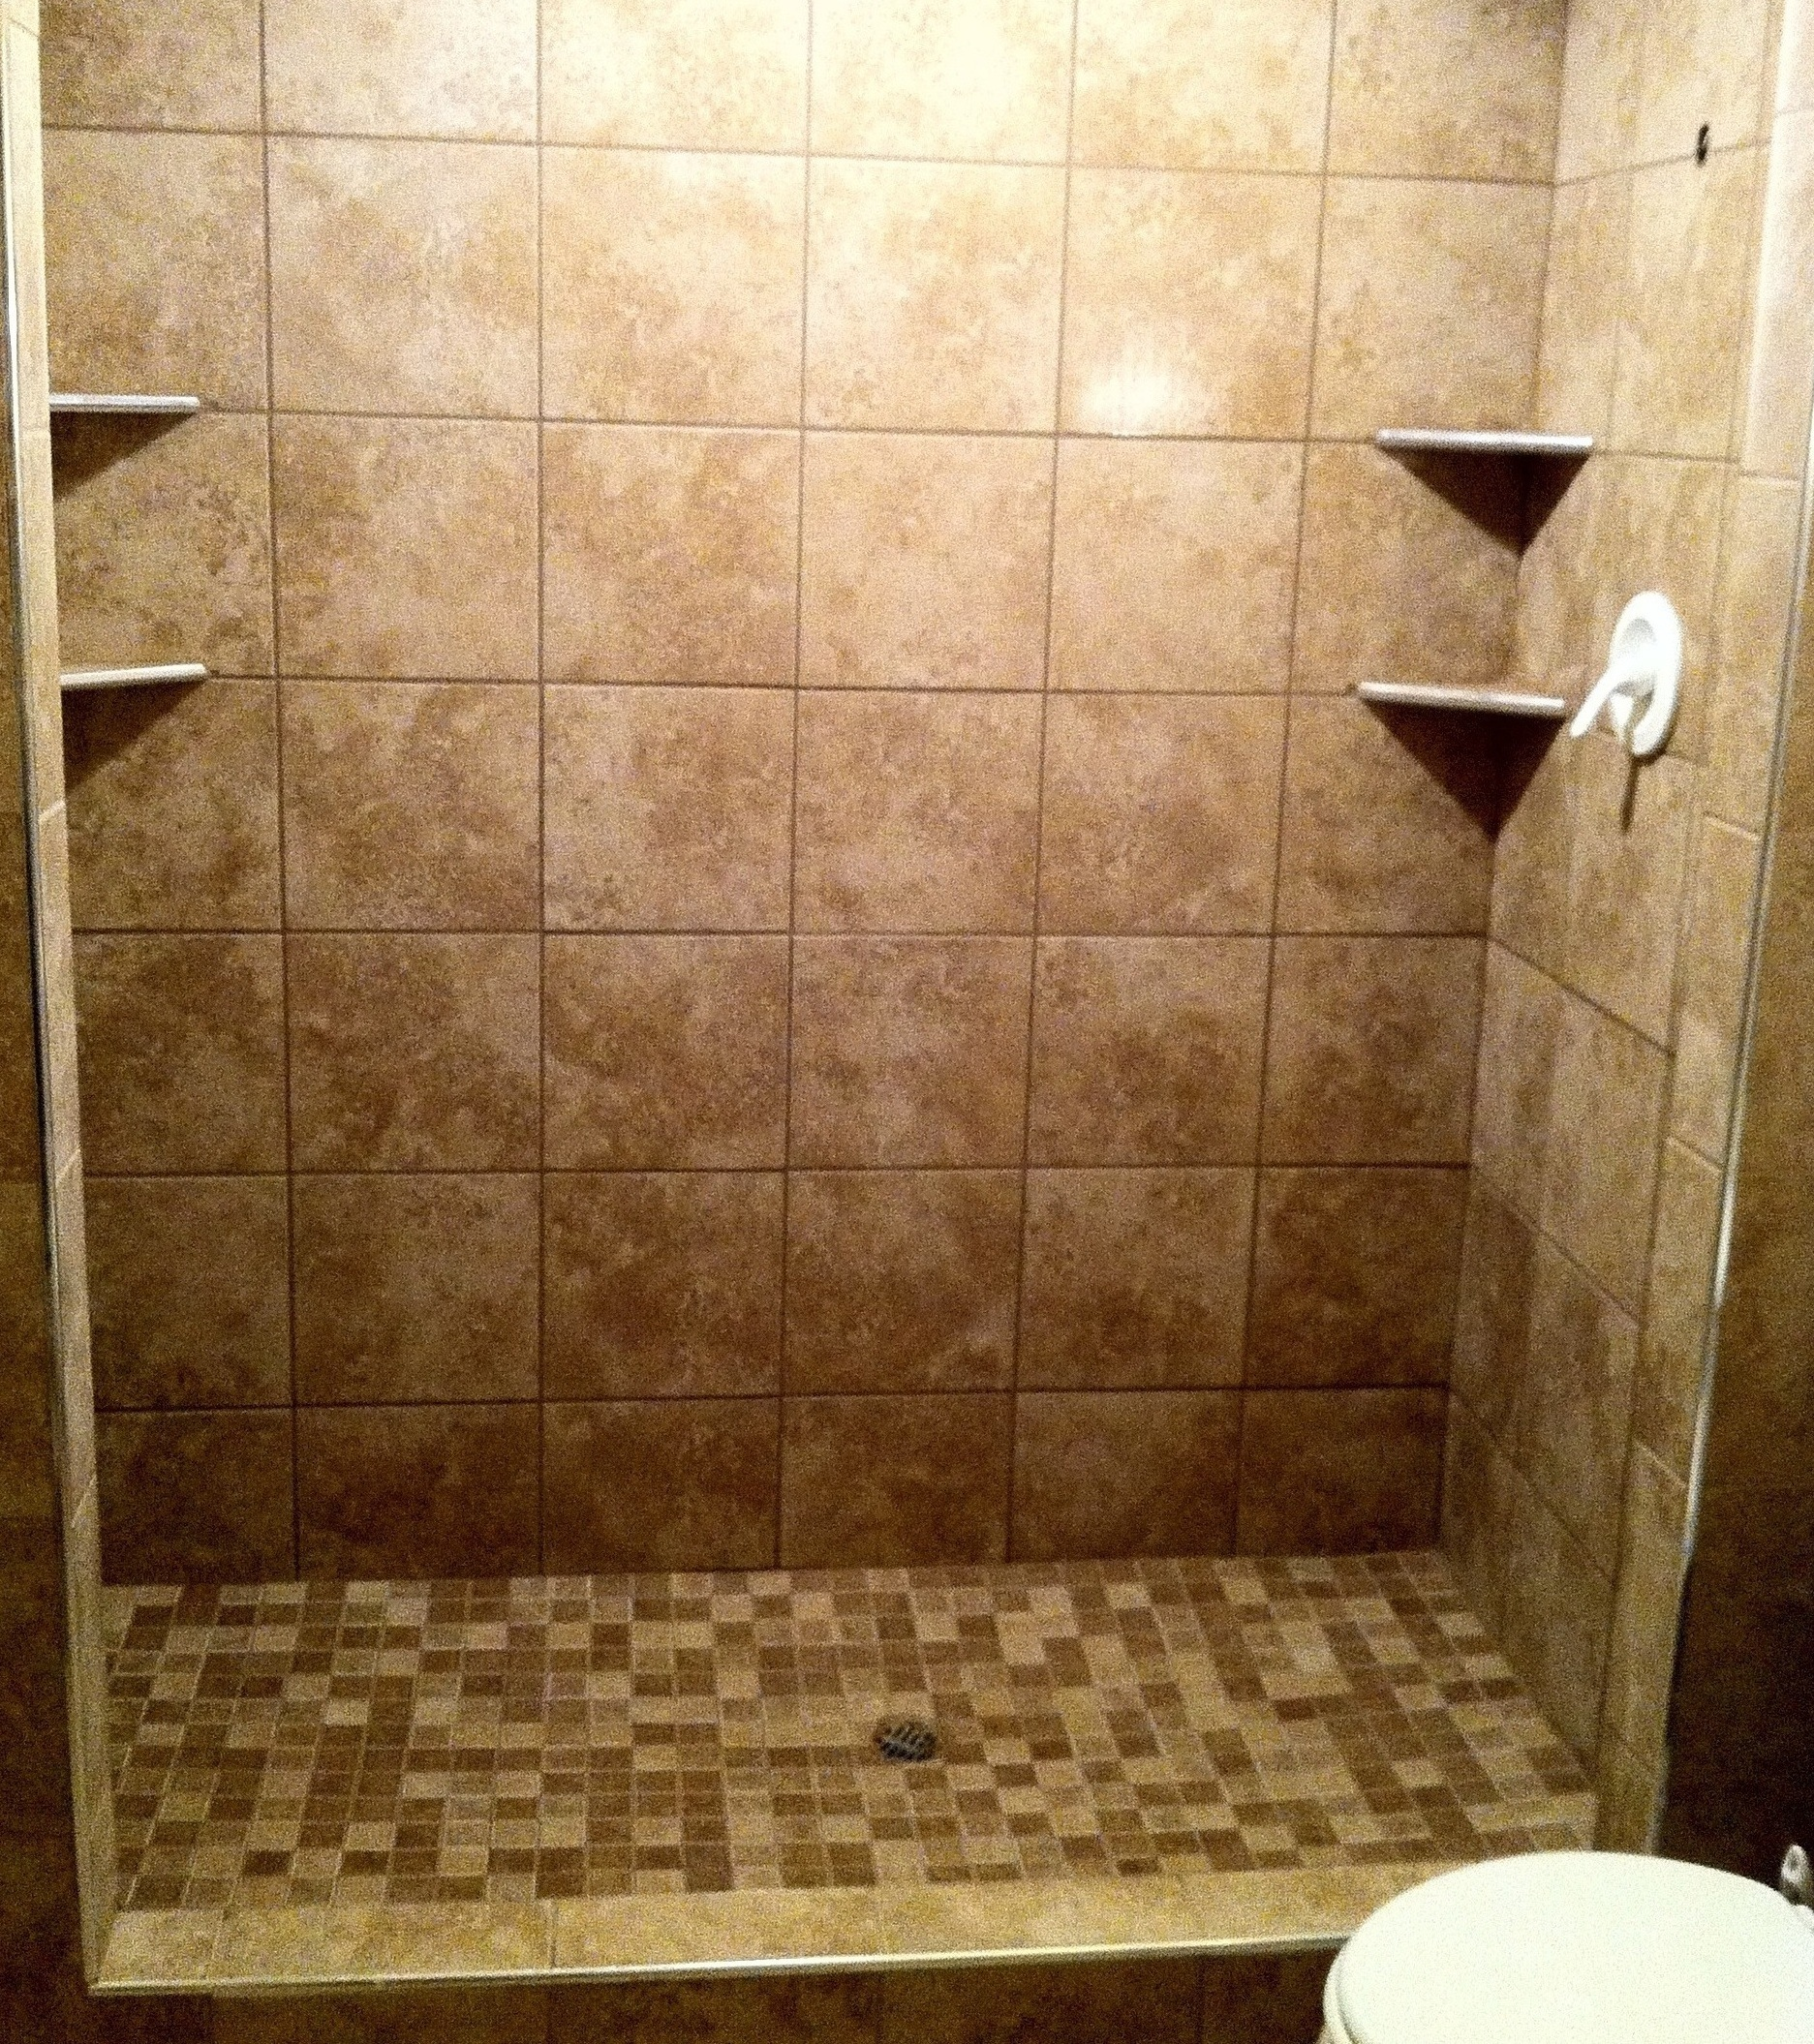 Shower installation complete columbia missouri bathroom remodel tile shower Install tile shower